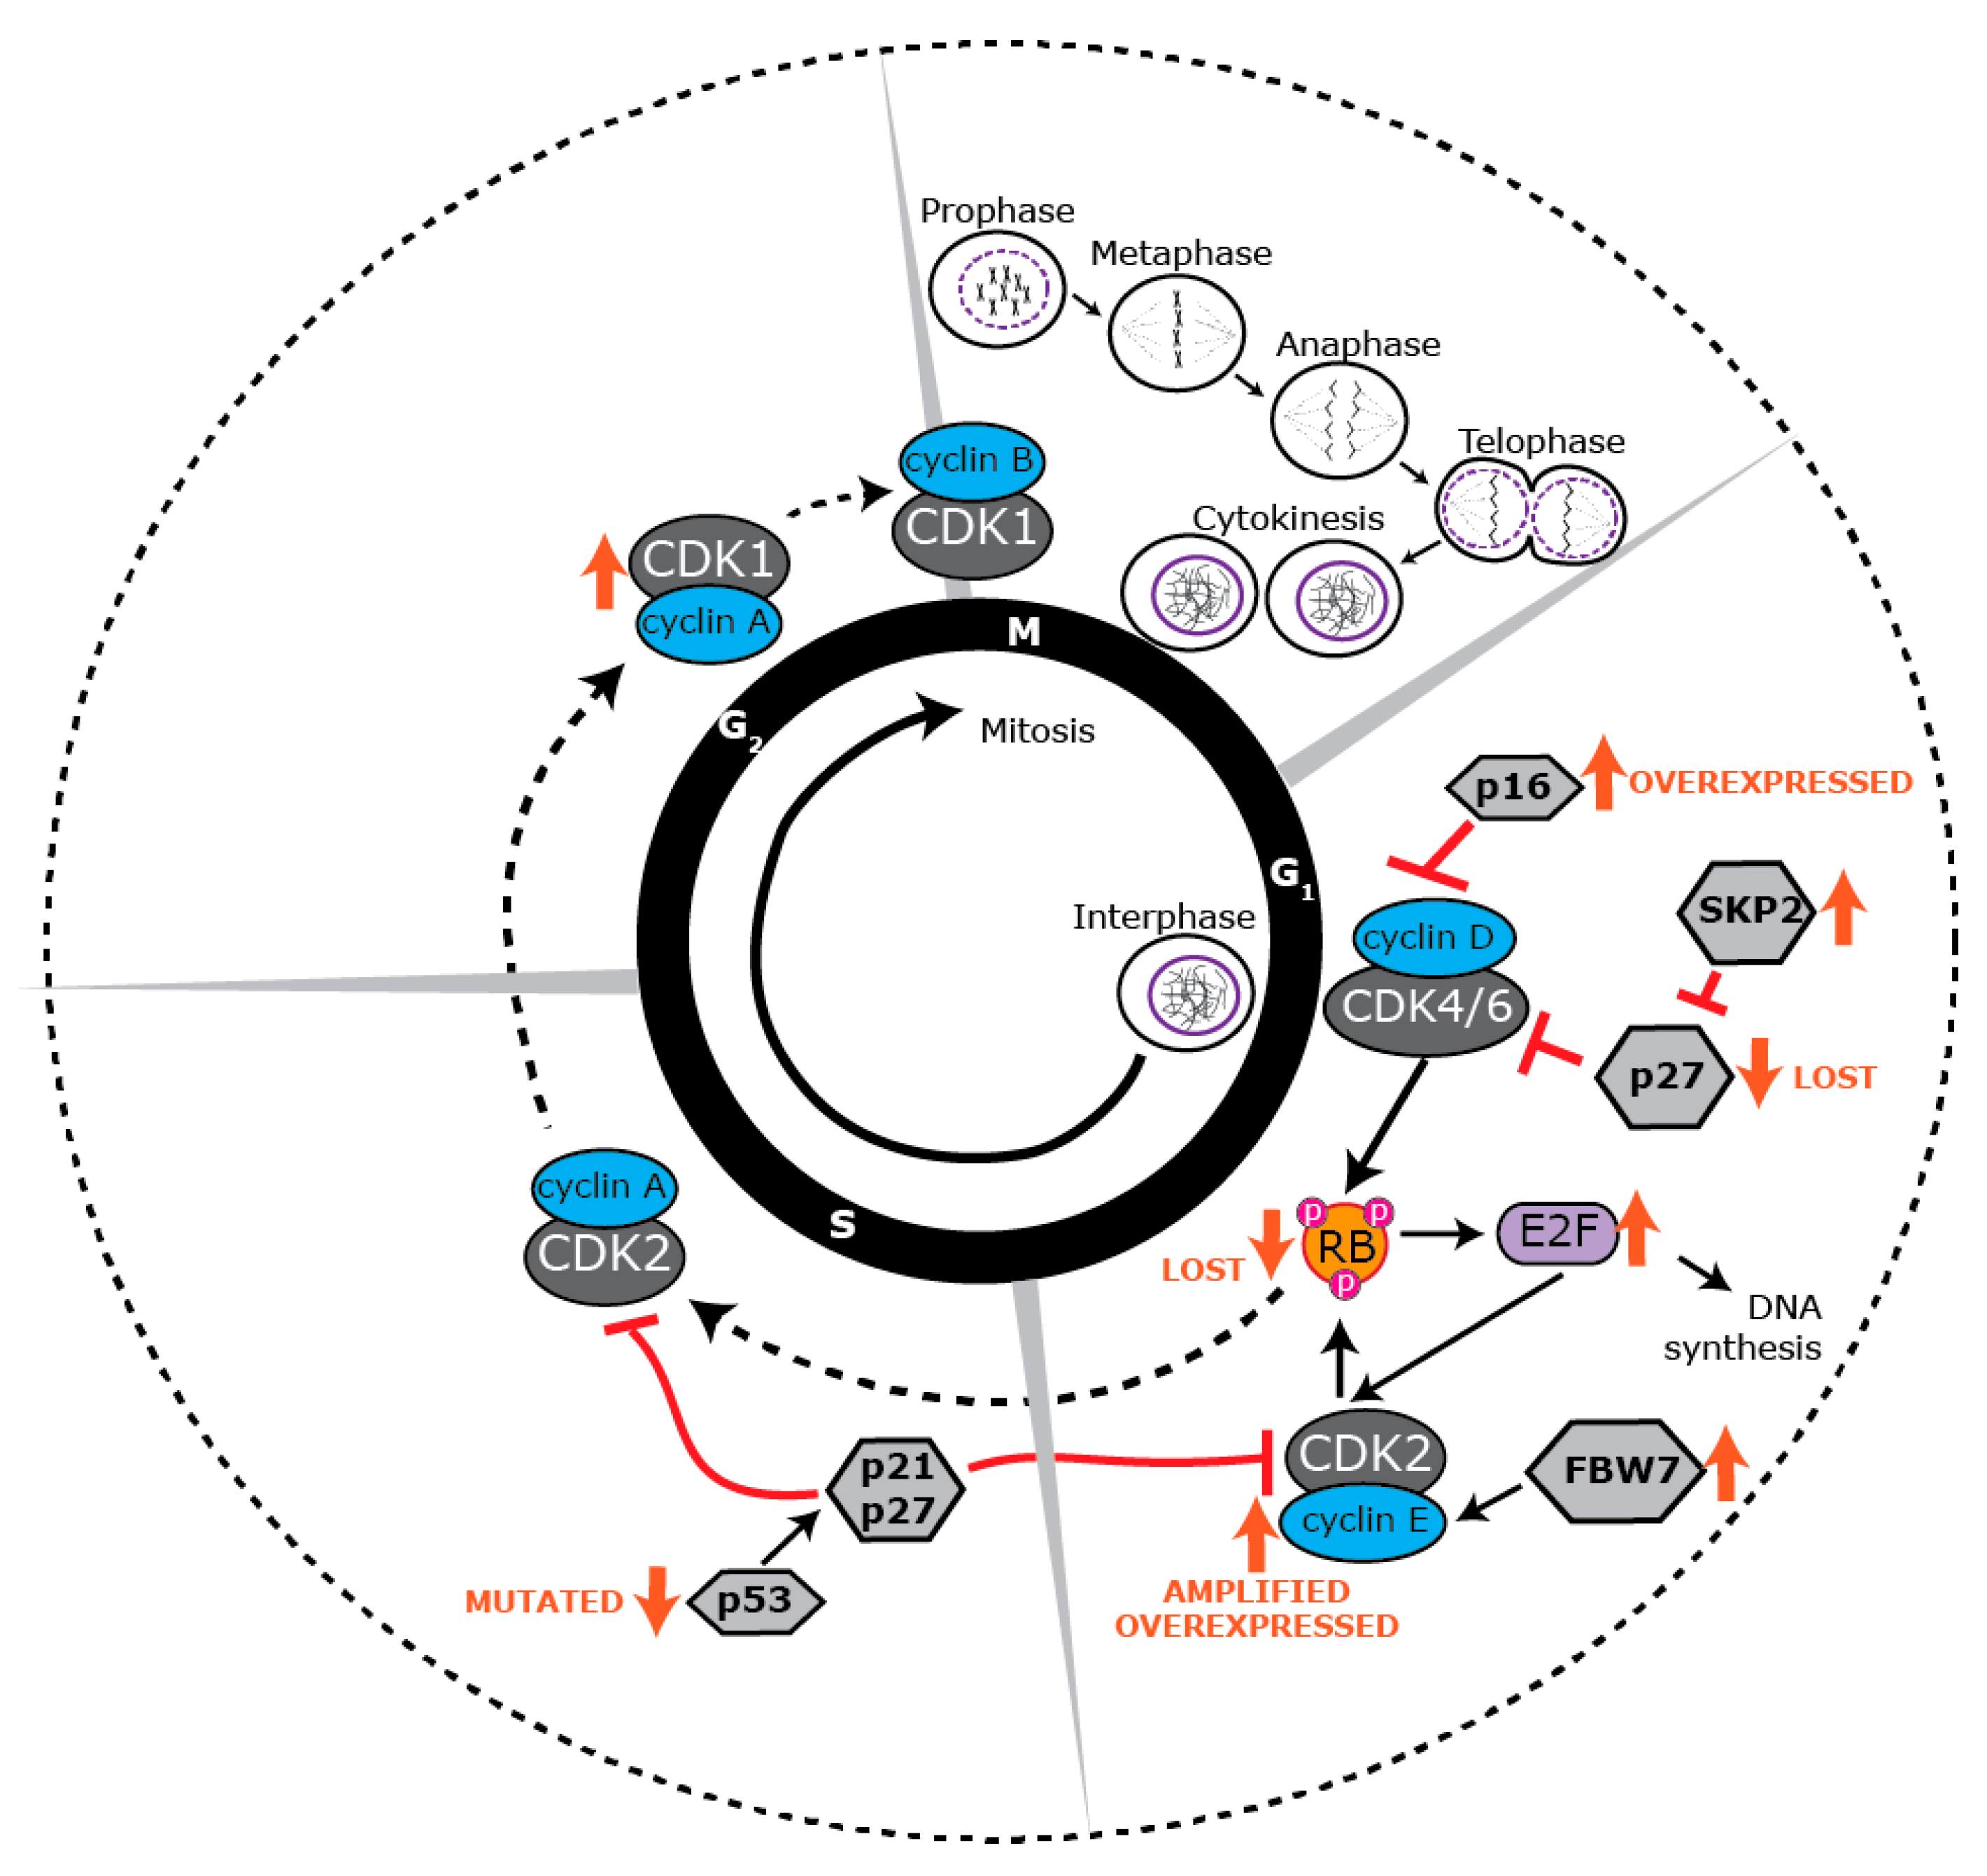 ijms free full text the proliferative and apoptotic landscape of Five Stages of Sleep Cycle no